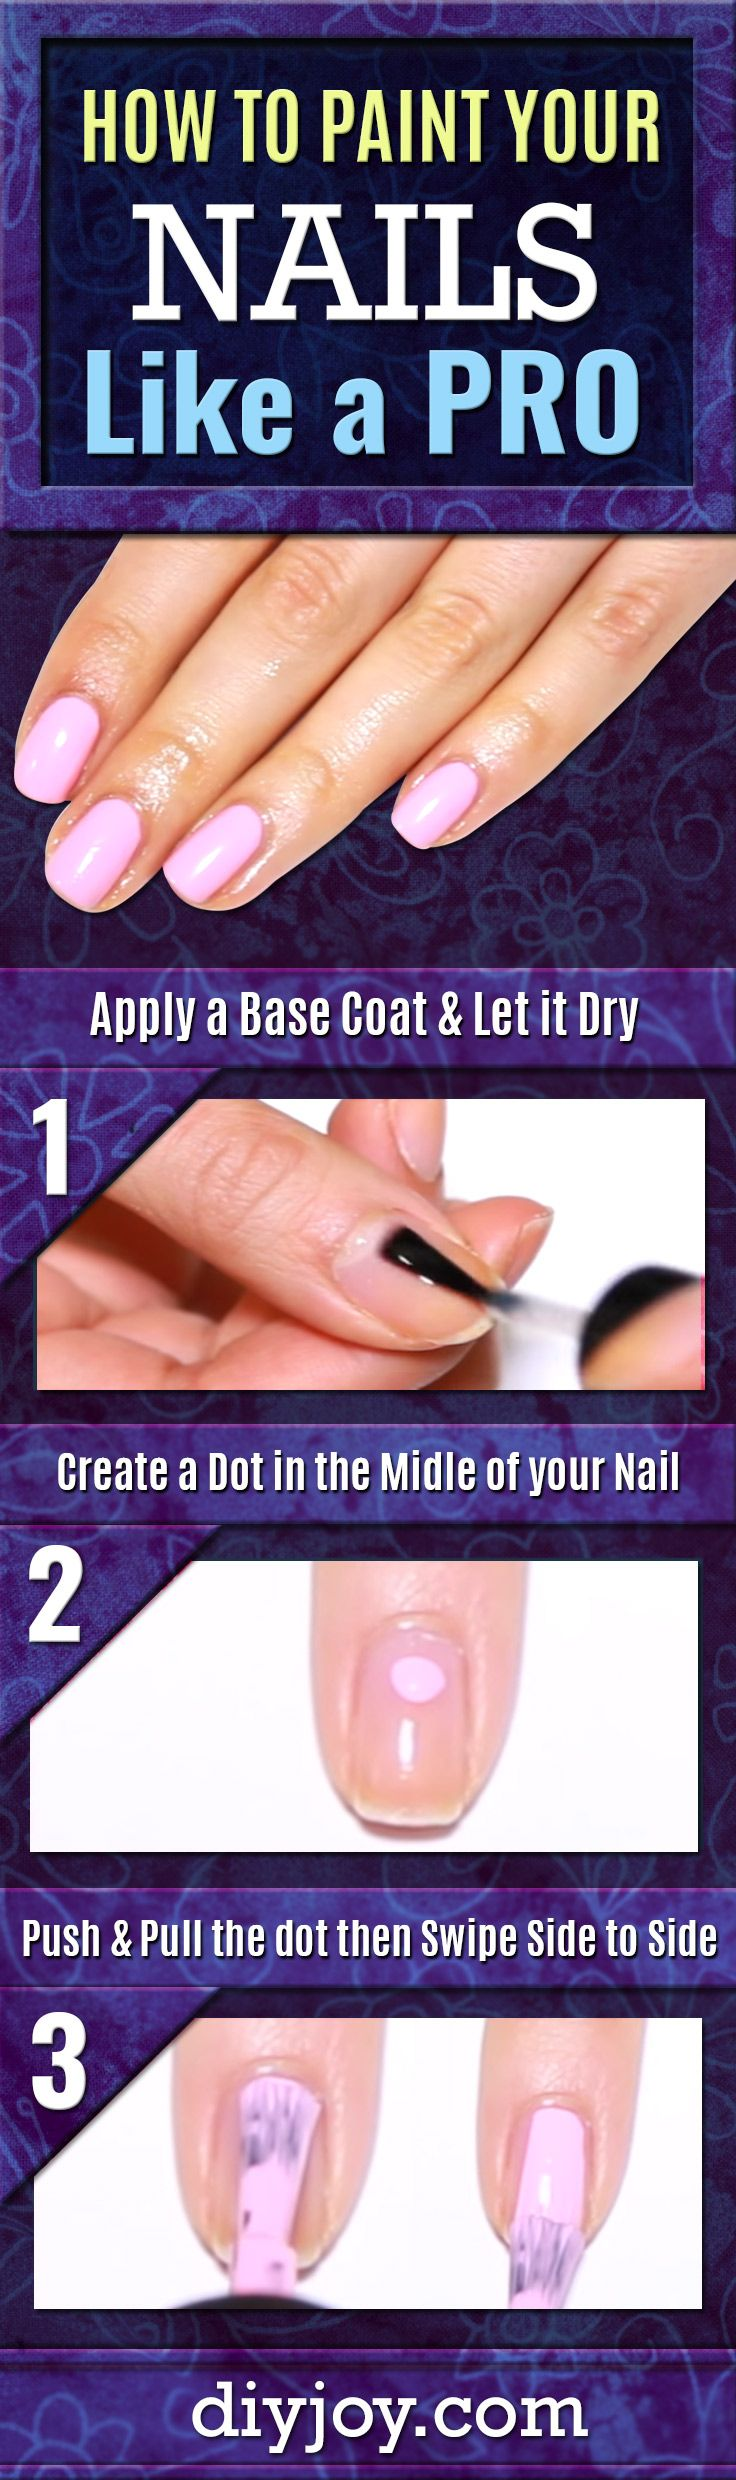 How To Paint Your Nails Like A Pro - Get a Perfect Manicure at Home by Following These Easy Step by Step Instructions for Nails - DIY Beauty, Crafts and Cool DIY Projects by DIY JOY